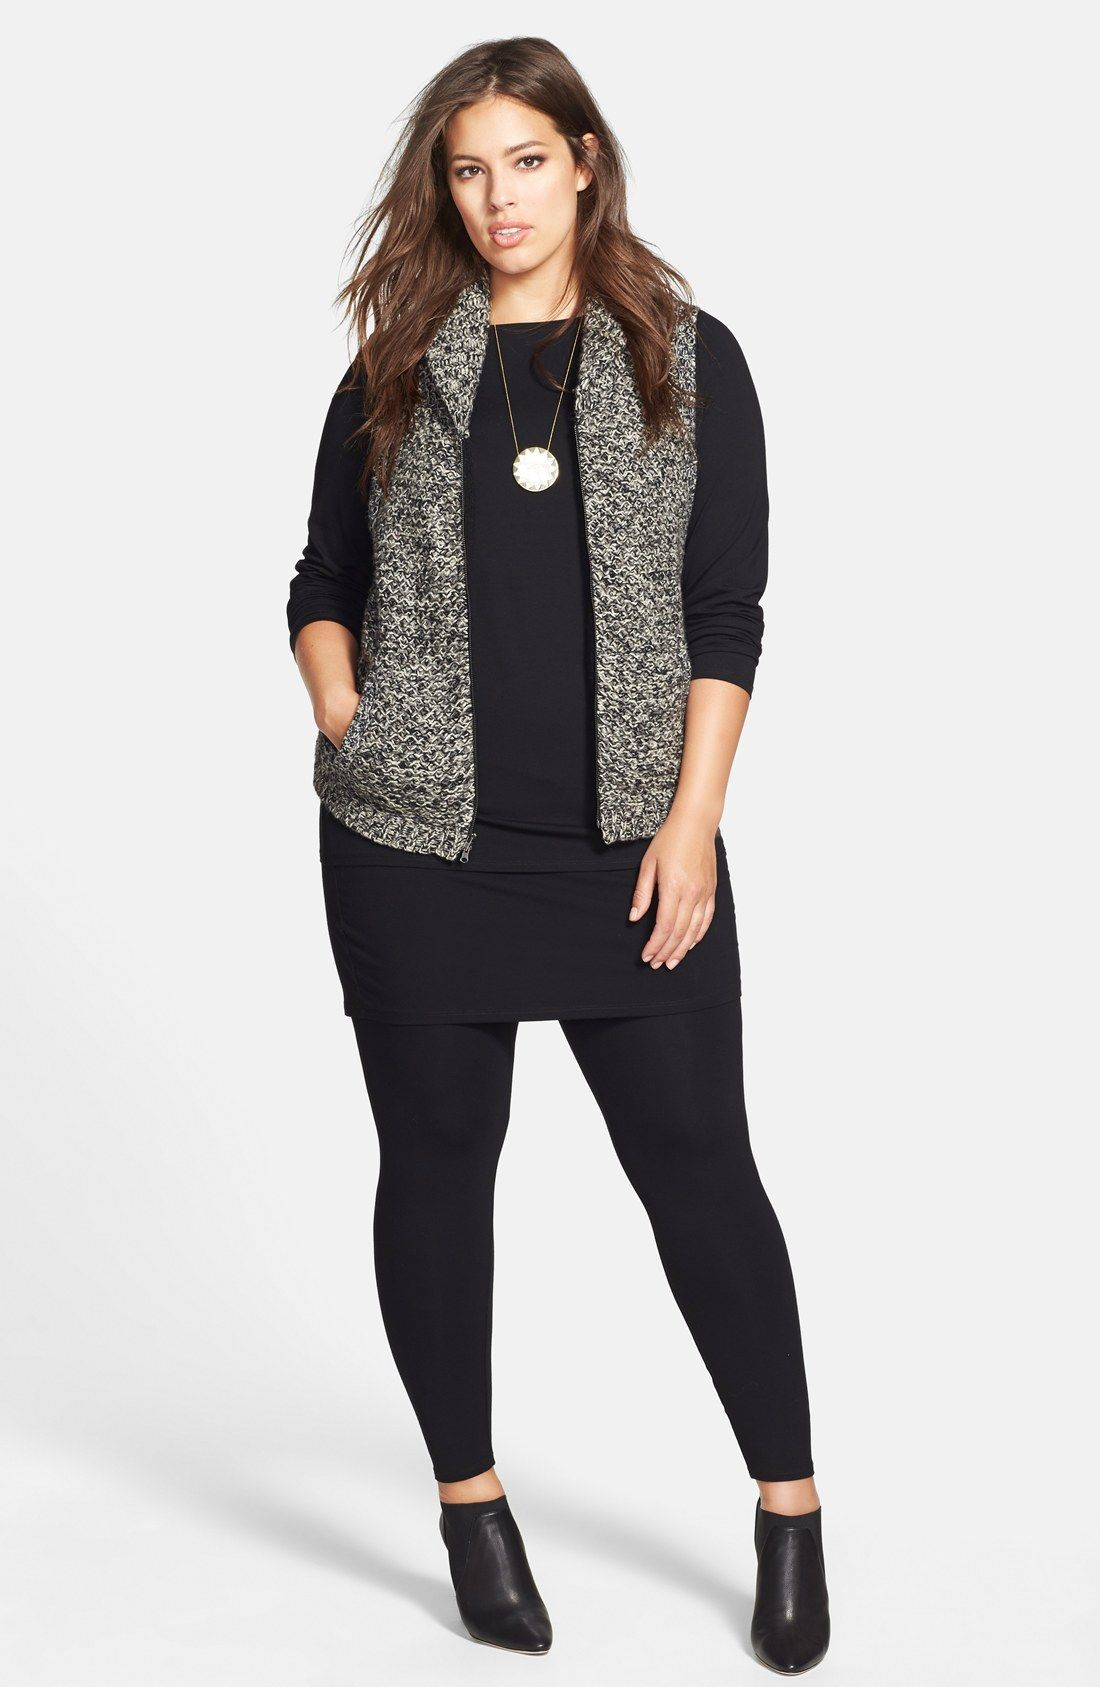 Plus Size Capri Leggings | Forever 21 PLUS - 2000150284 | Clothes ...